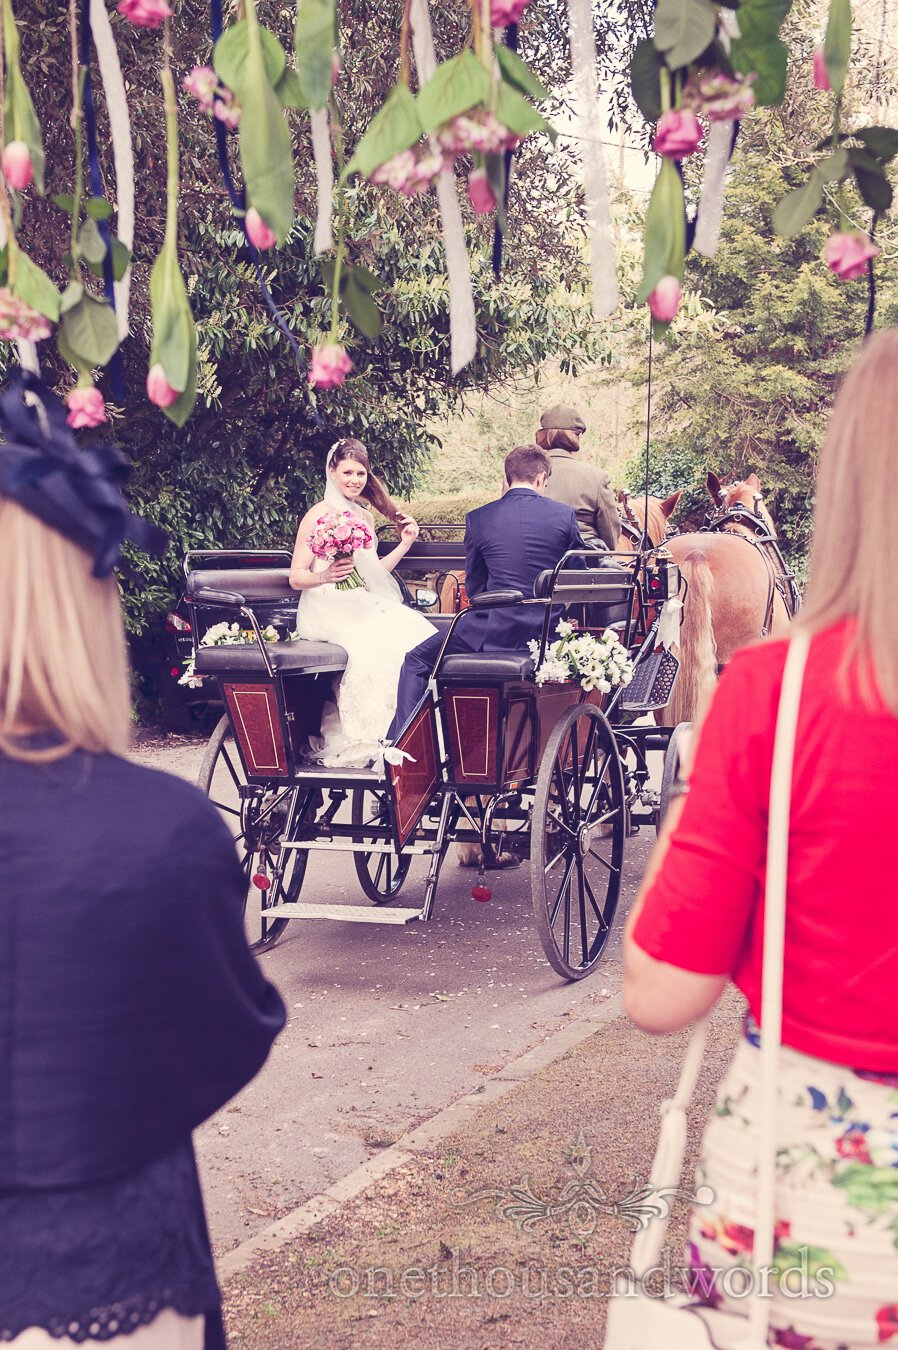 Newlyweds leave on horse drawn carriage